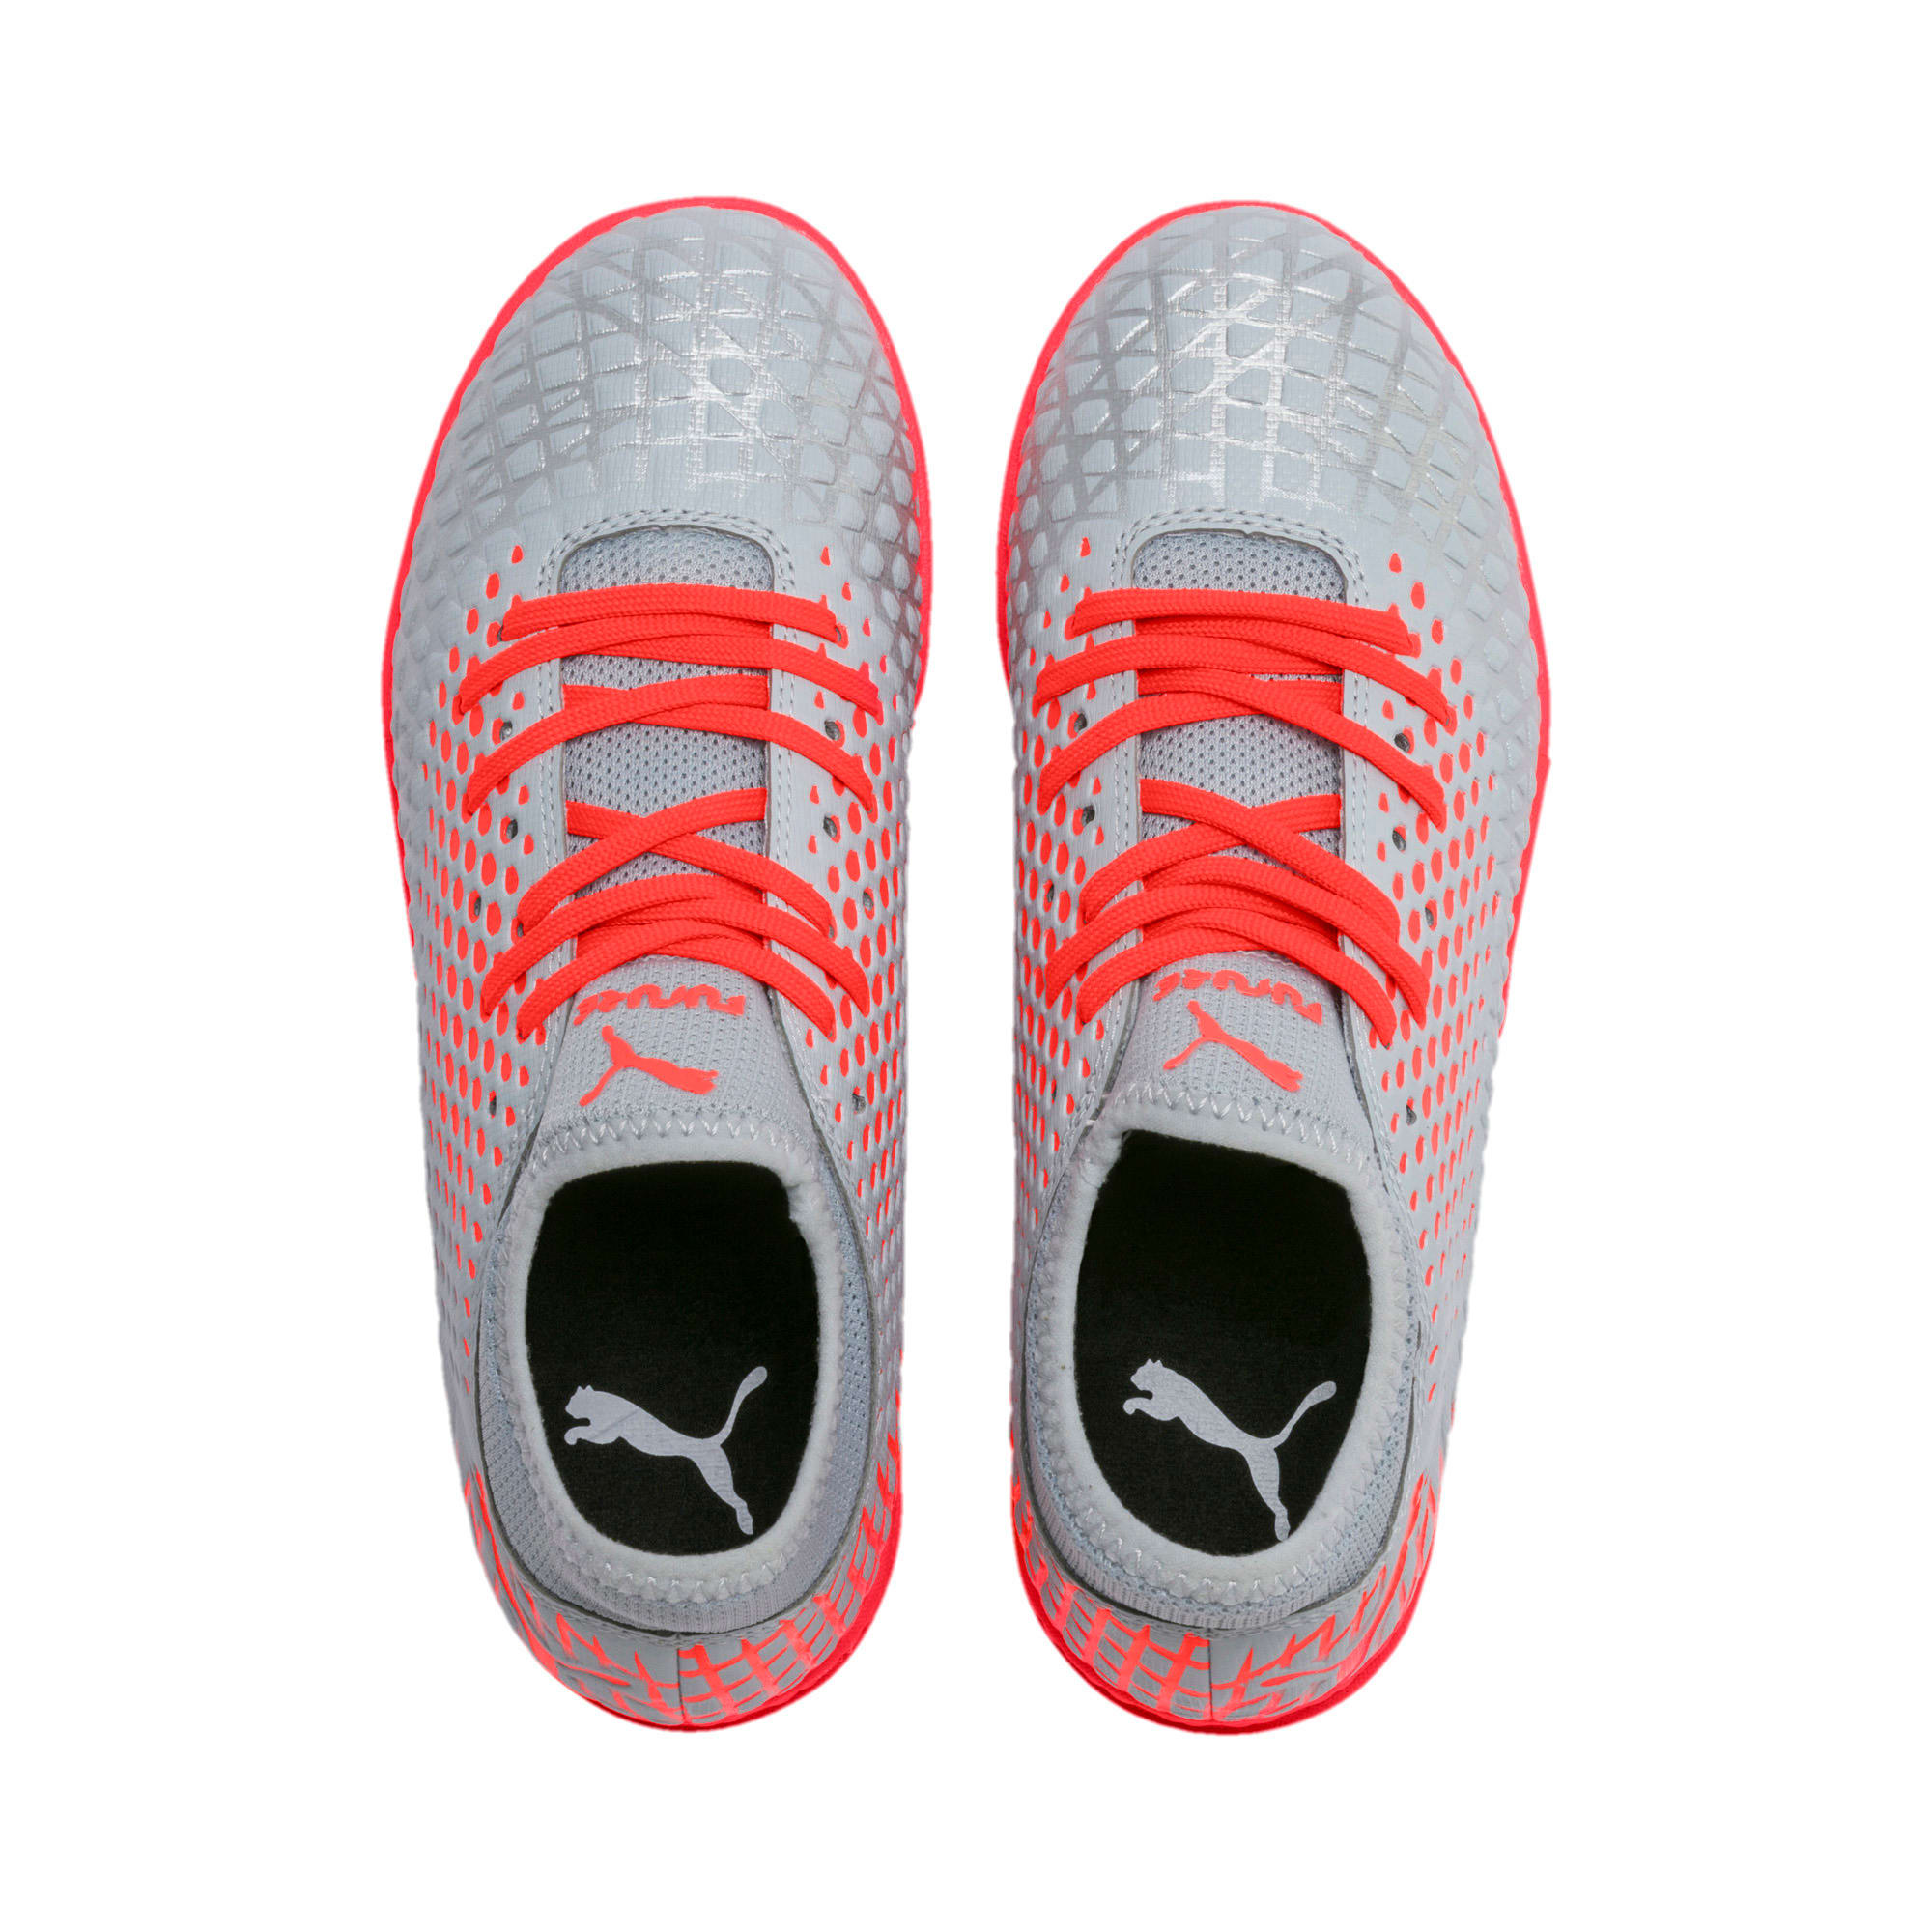 Thumbnail 6 of FUTURE 4.4 TT Youth Football Boots, Glacial Blue-Nrgy Red, medium-IND